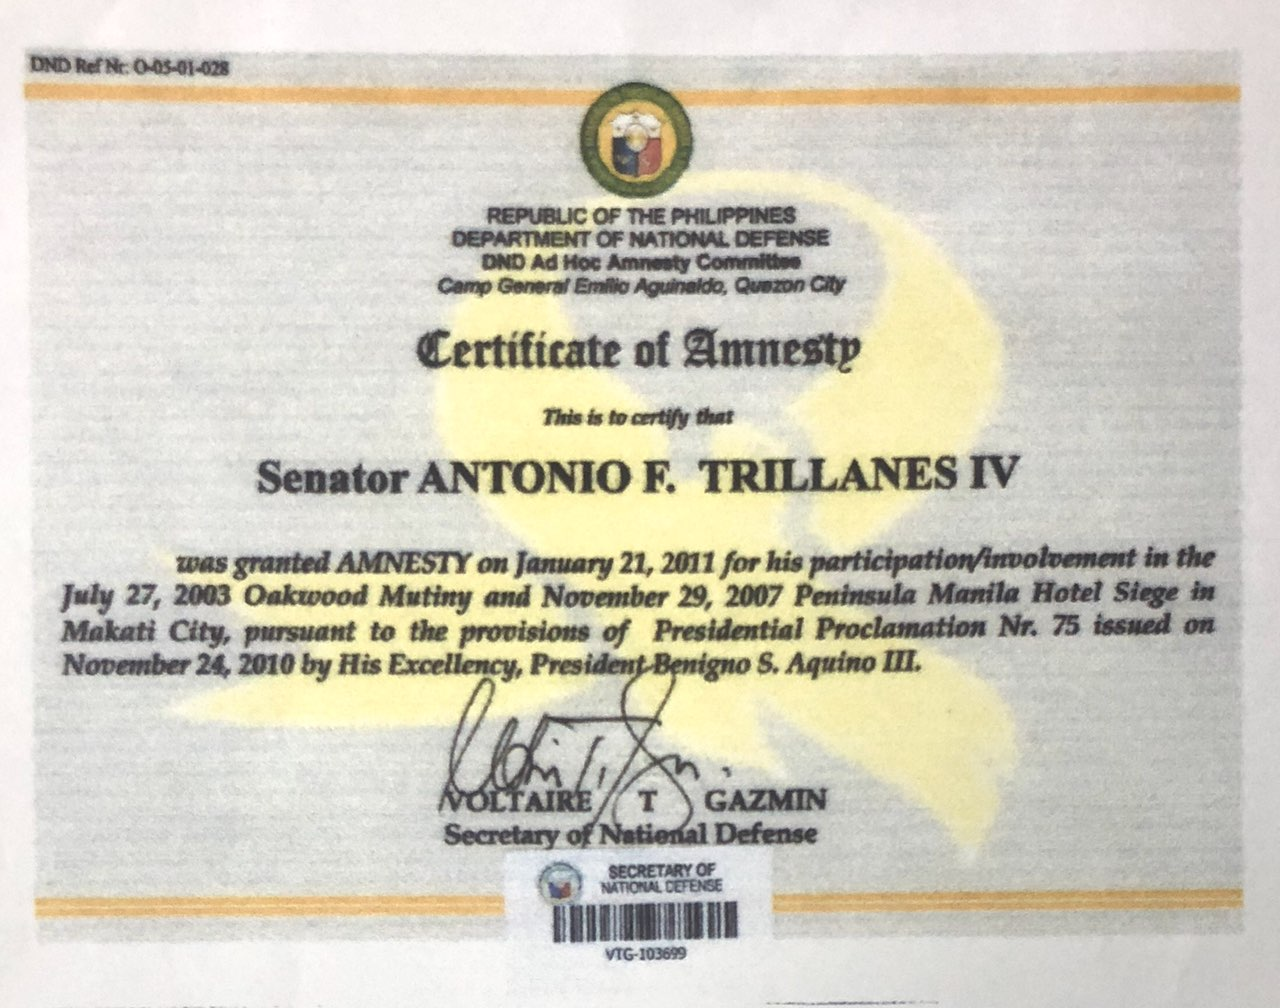 Photo from Trillanes' office